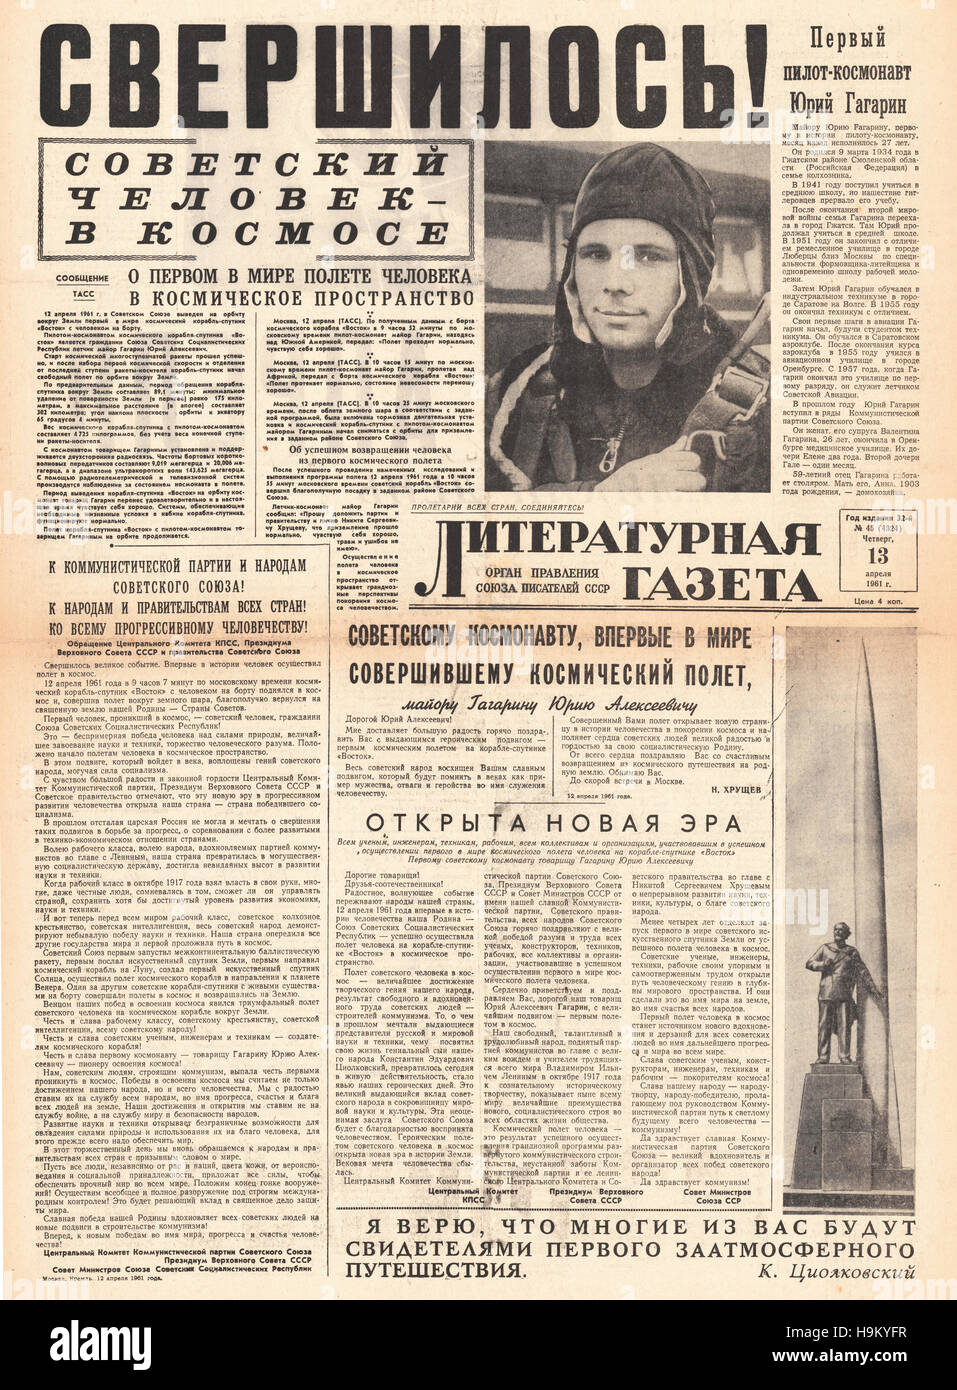 1961 Soviet Newspaper Front Page Yuri Gagarin Is First Man In Space